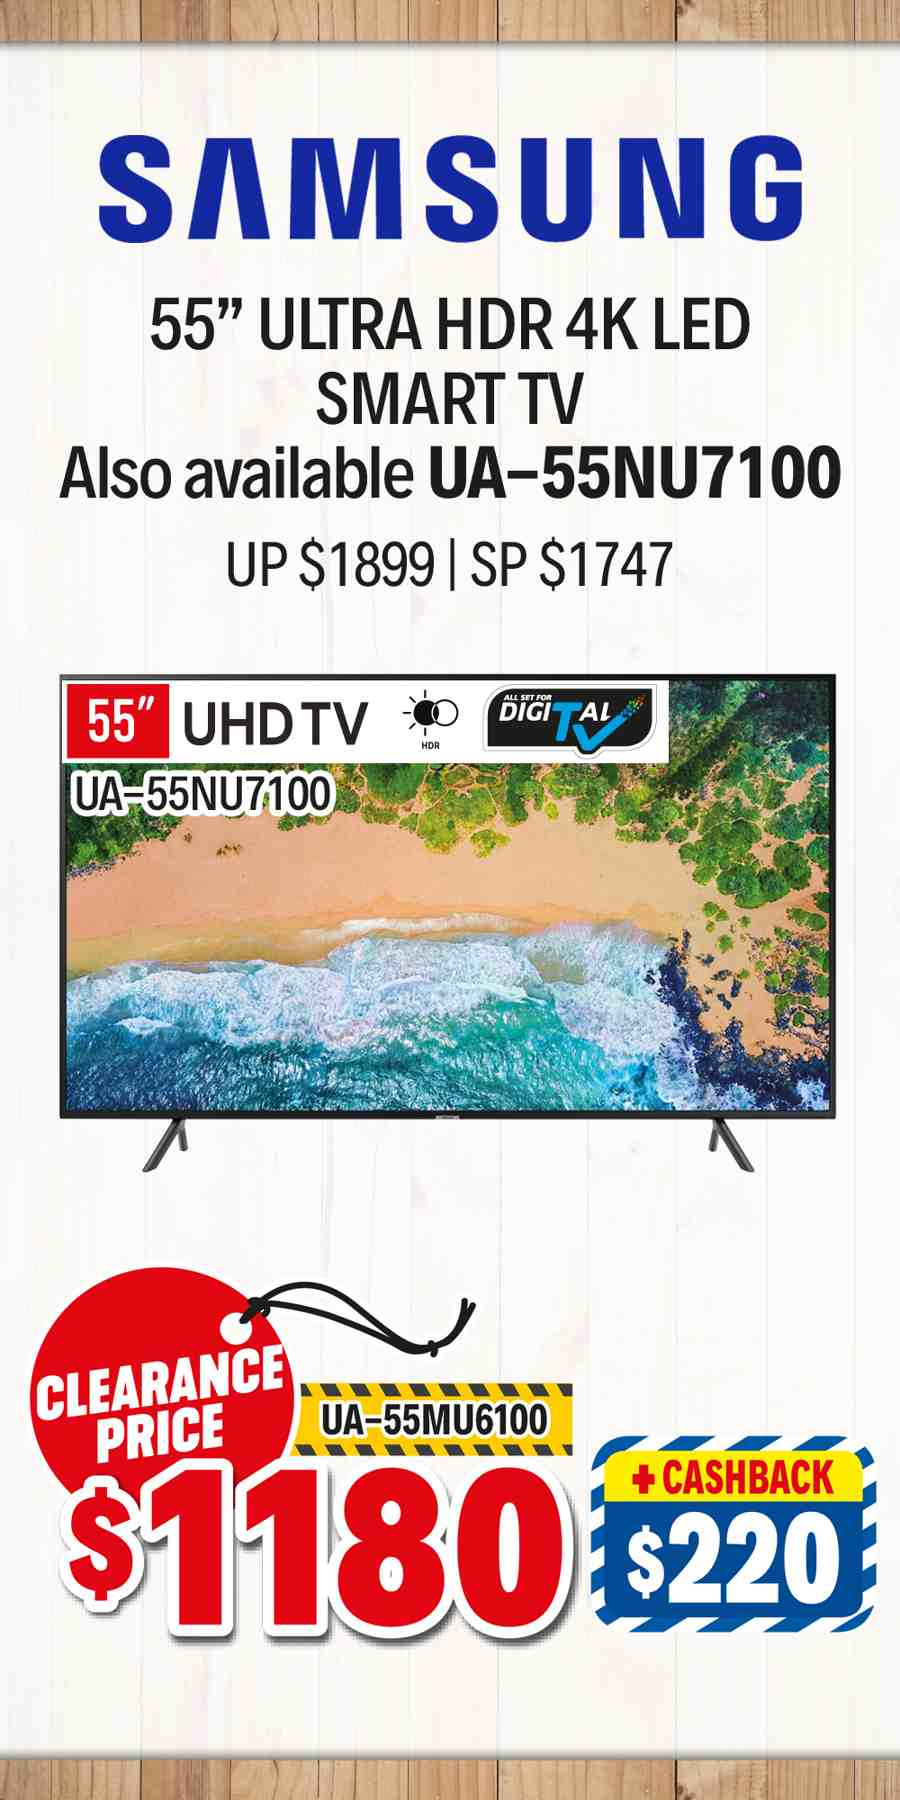 Audio House Warehouse Sale At Bendemeer Has Up To 90% Off TVs